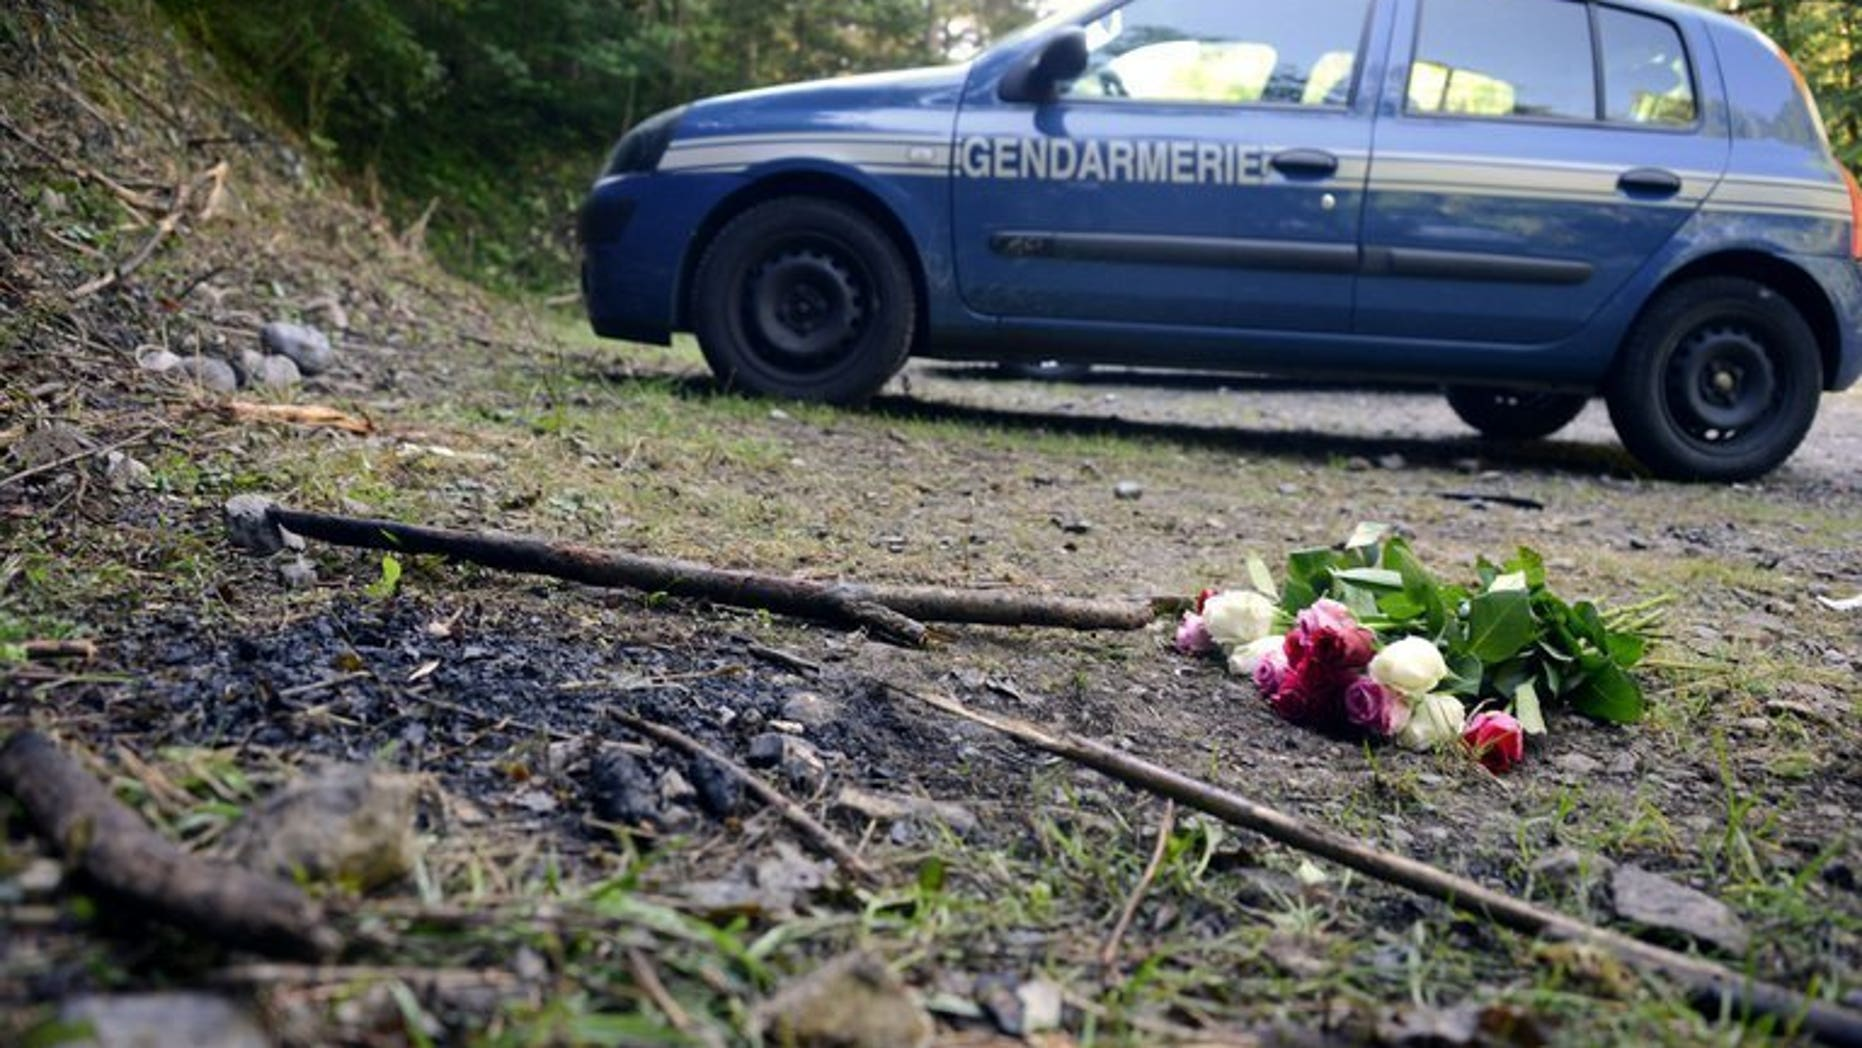 A French gendarmerie car is parked on September 8, 2012, at the place where three members of a British-Iraqi family and a local man were shot dead in the French Alpine village of Chevaline. French and British investigators say they have made significant progress in the brutal quadruple murder.